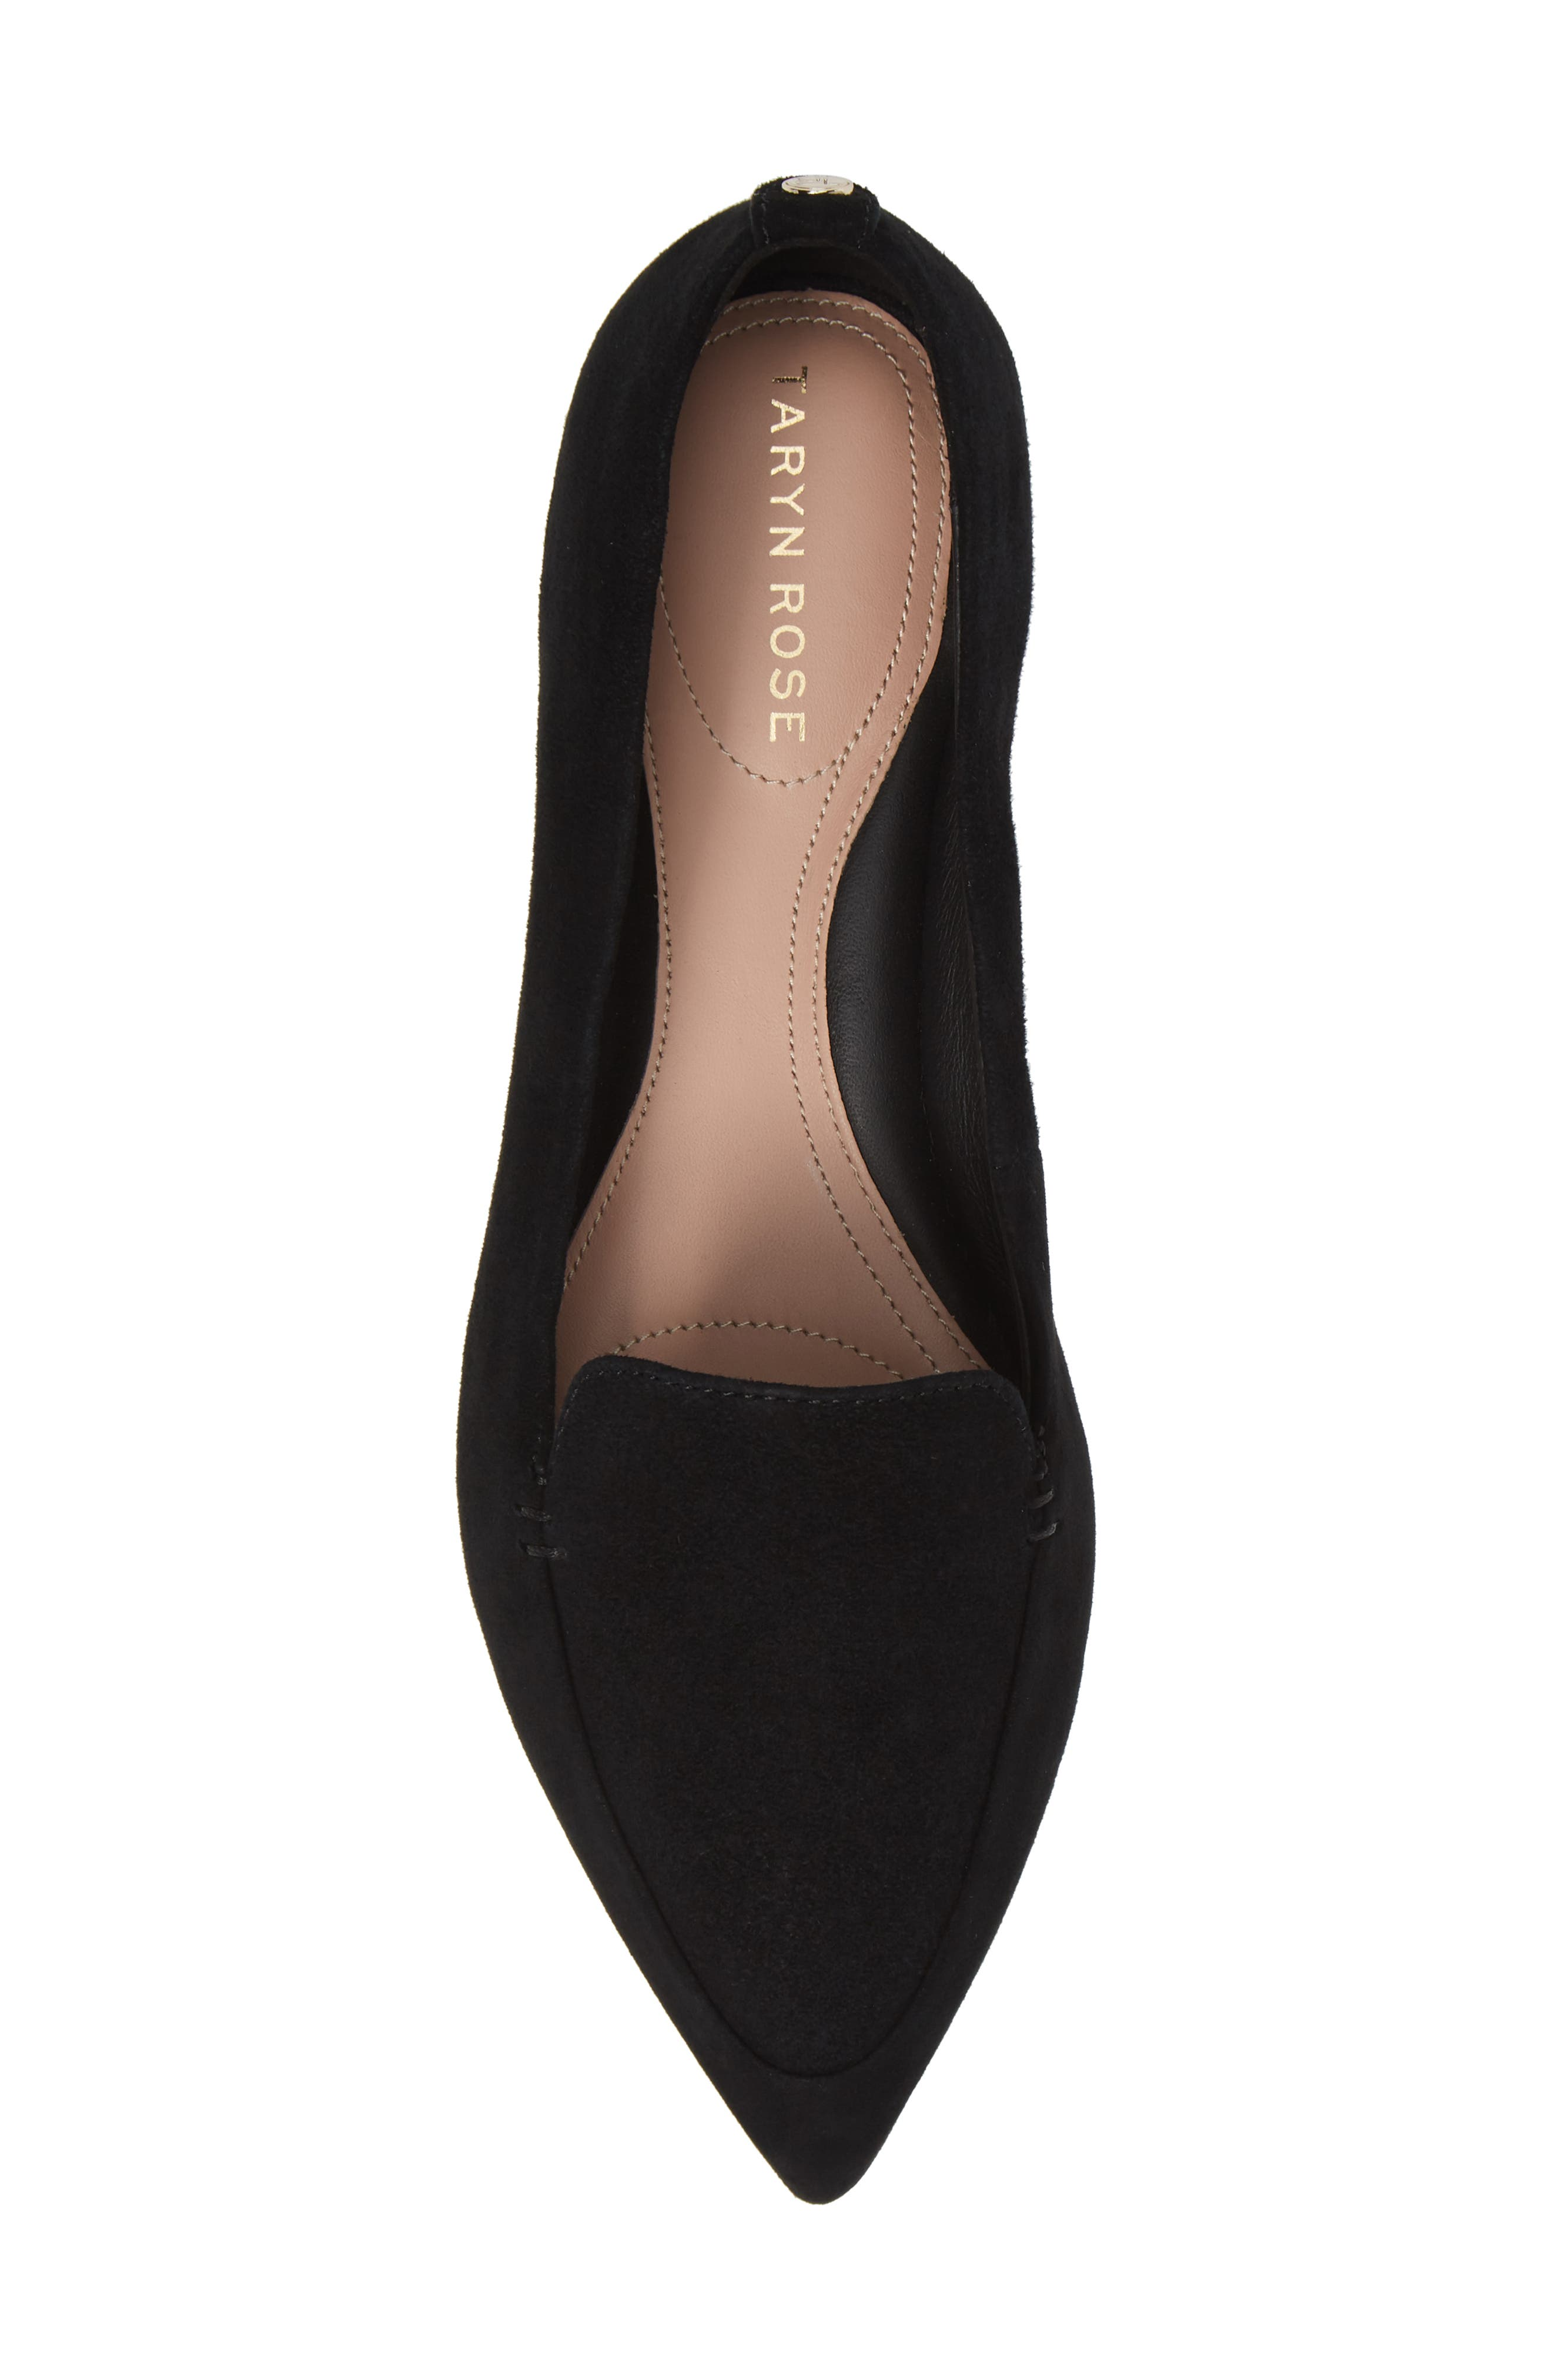 TARYN ROSE, Faye Pointy Toe Loafer, Alternate thumbnail 5, color, BLACK/ BLACK SUEDE